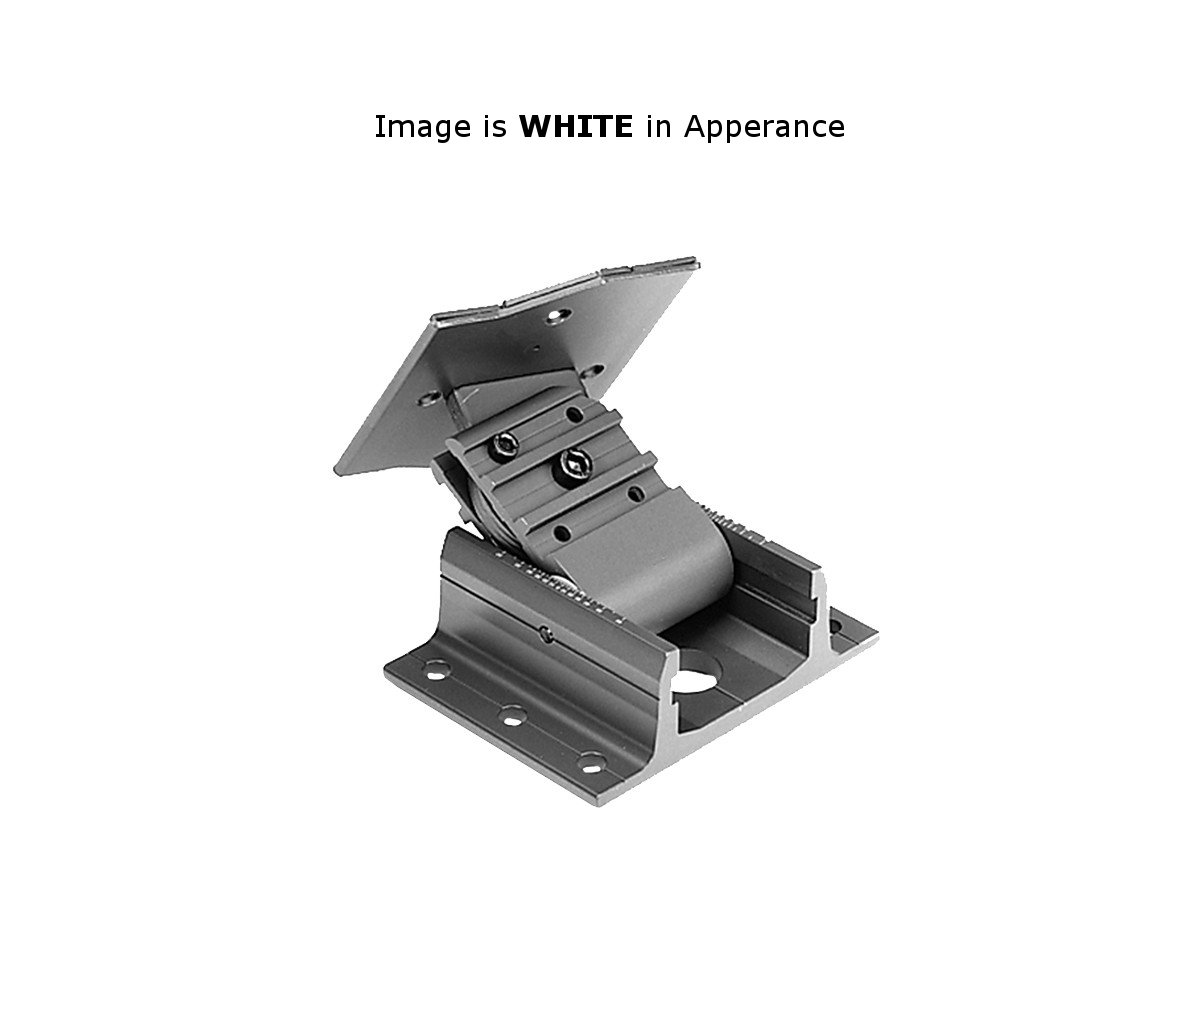 Wall Mount Bracket for 402-II, 027067